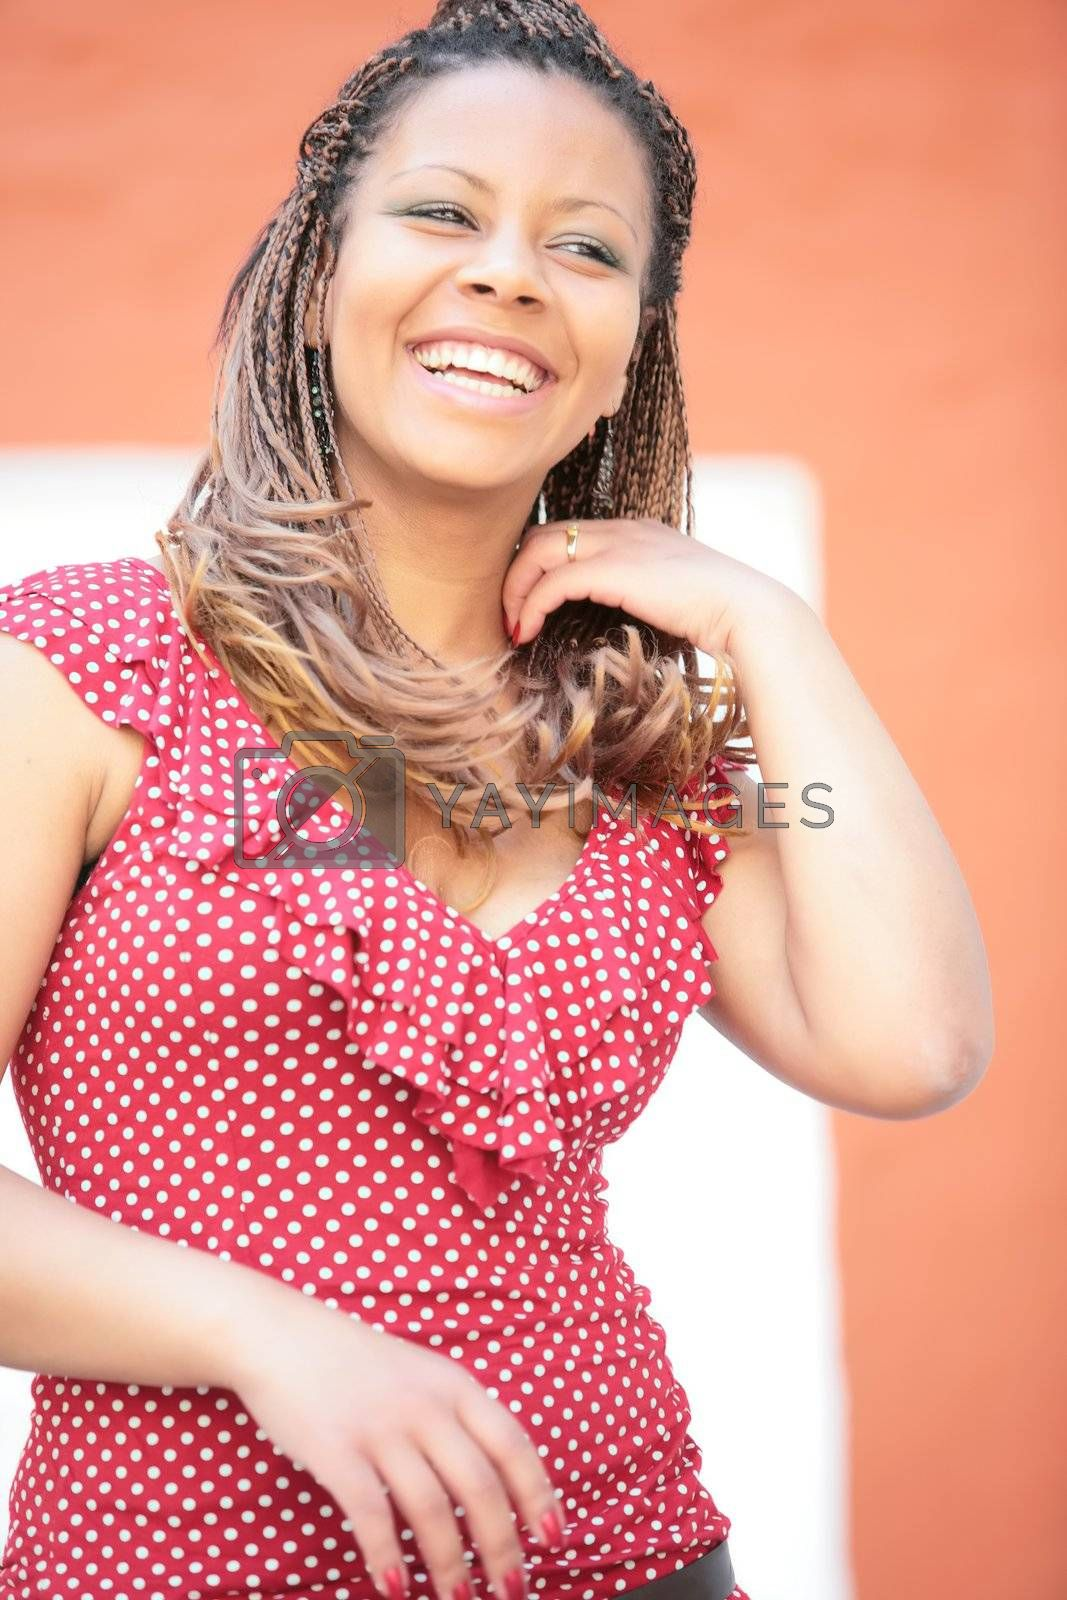 laughter woman in re polka dress by Astroid